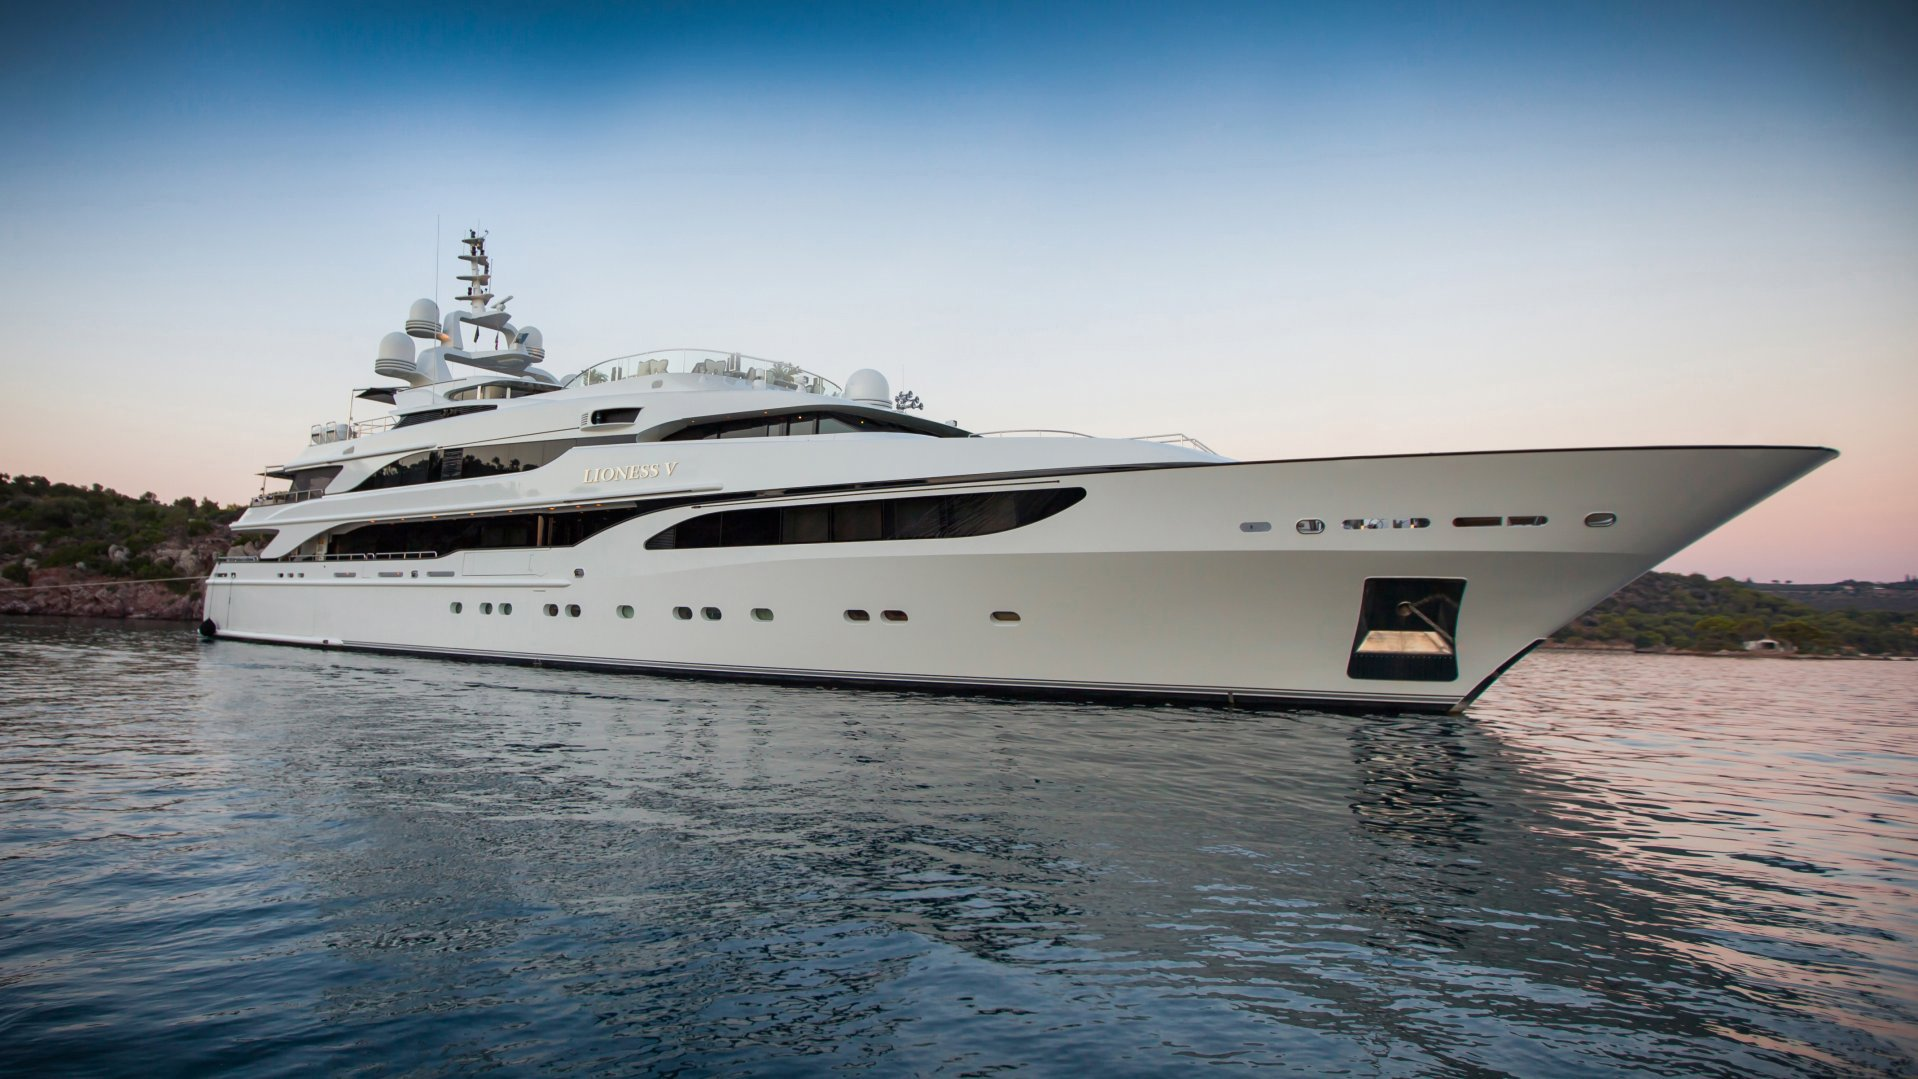 CHARTER - LIONESS V YACHT25